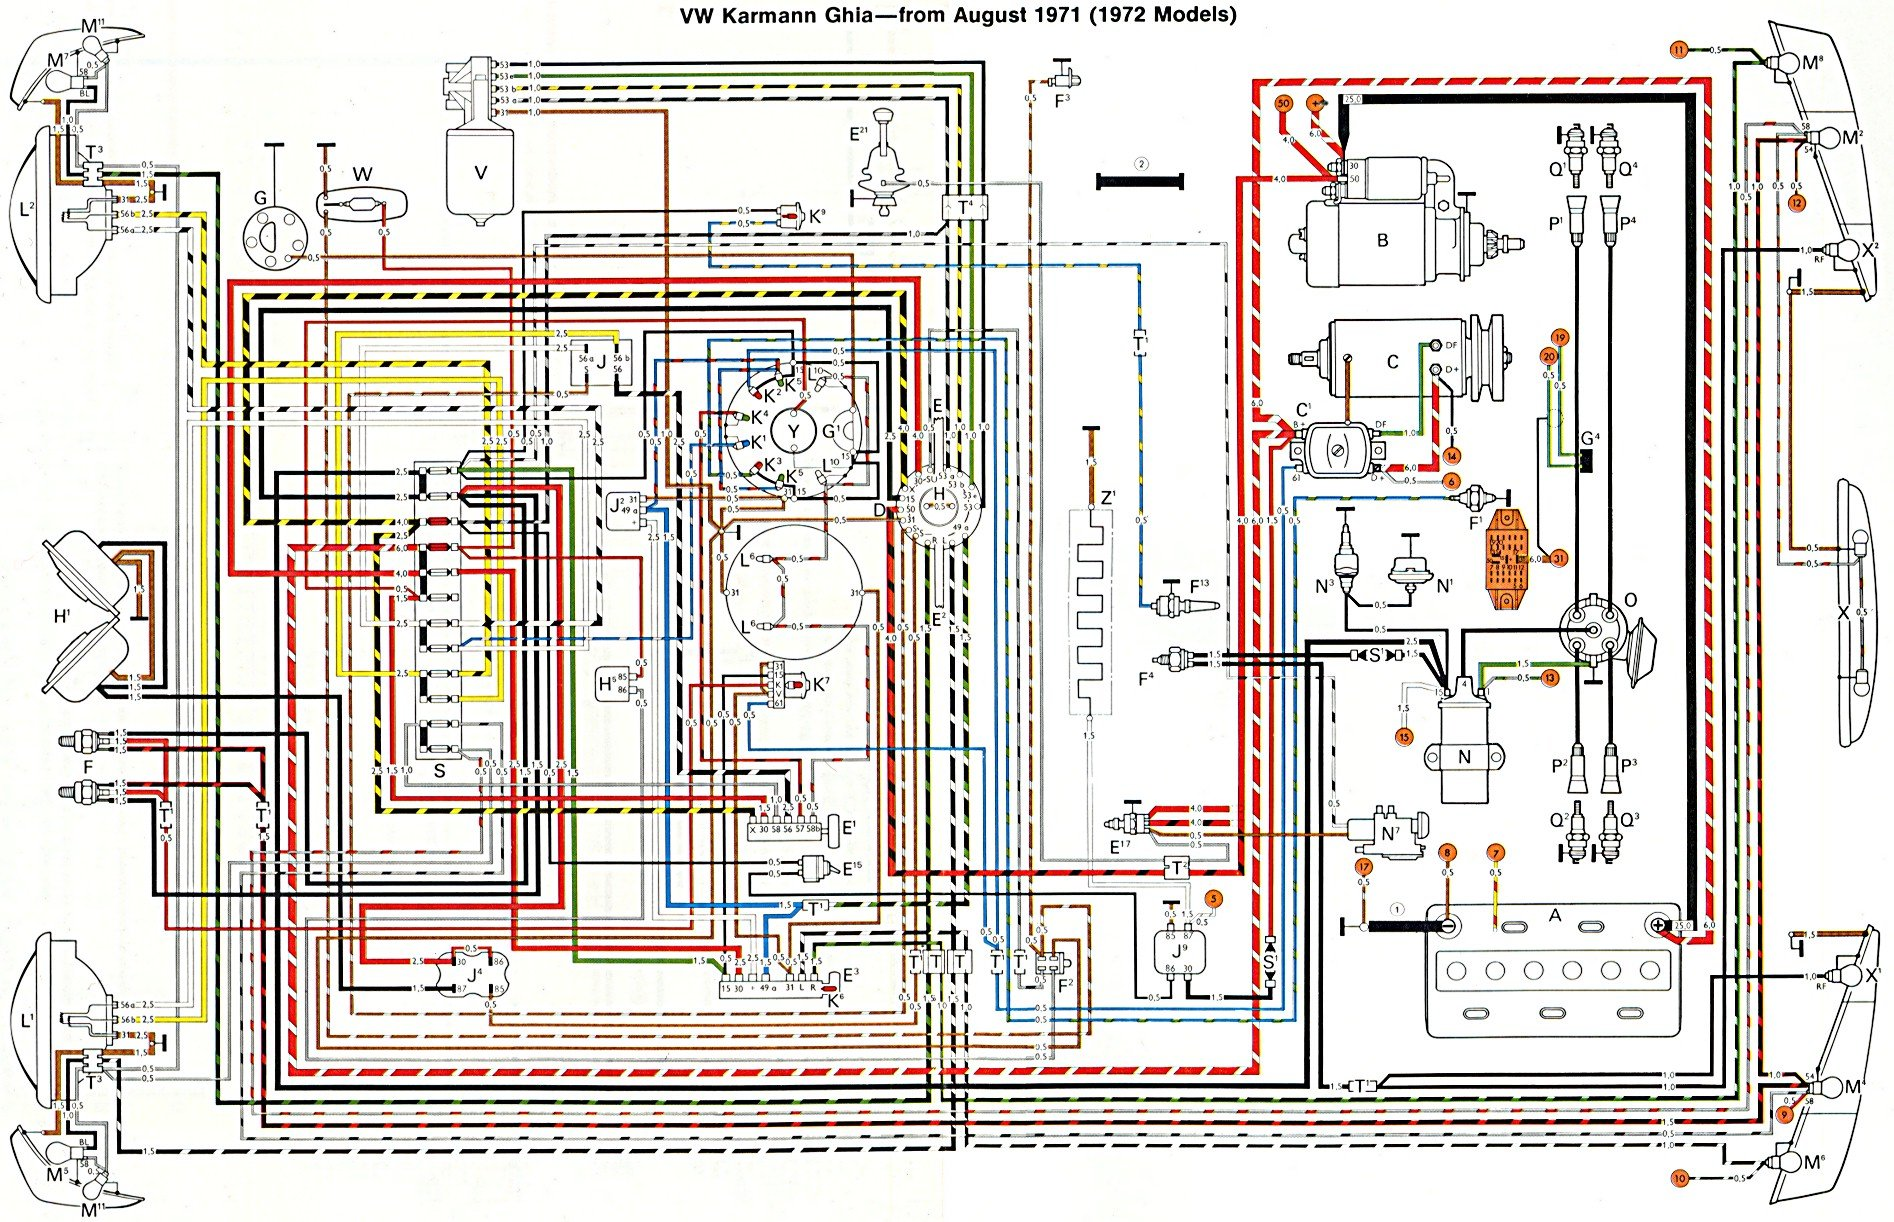 72ghia vw type 3 wiring diagram vw wiring diagrams free downloads \u2022 free vw type 3 wiring harness at fashall.co